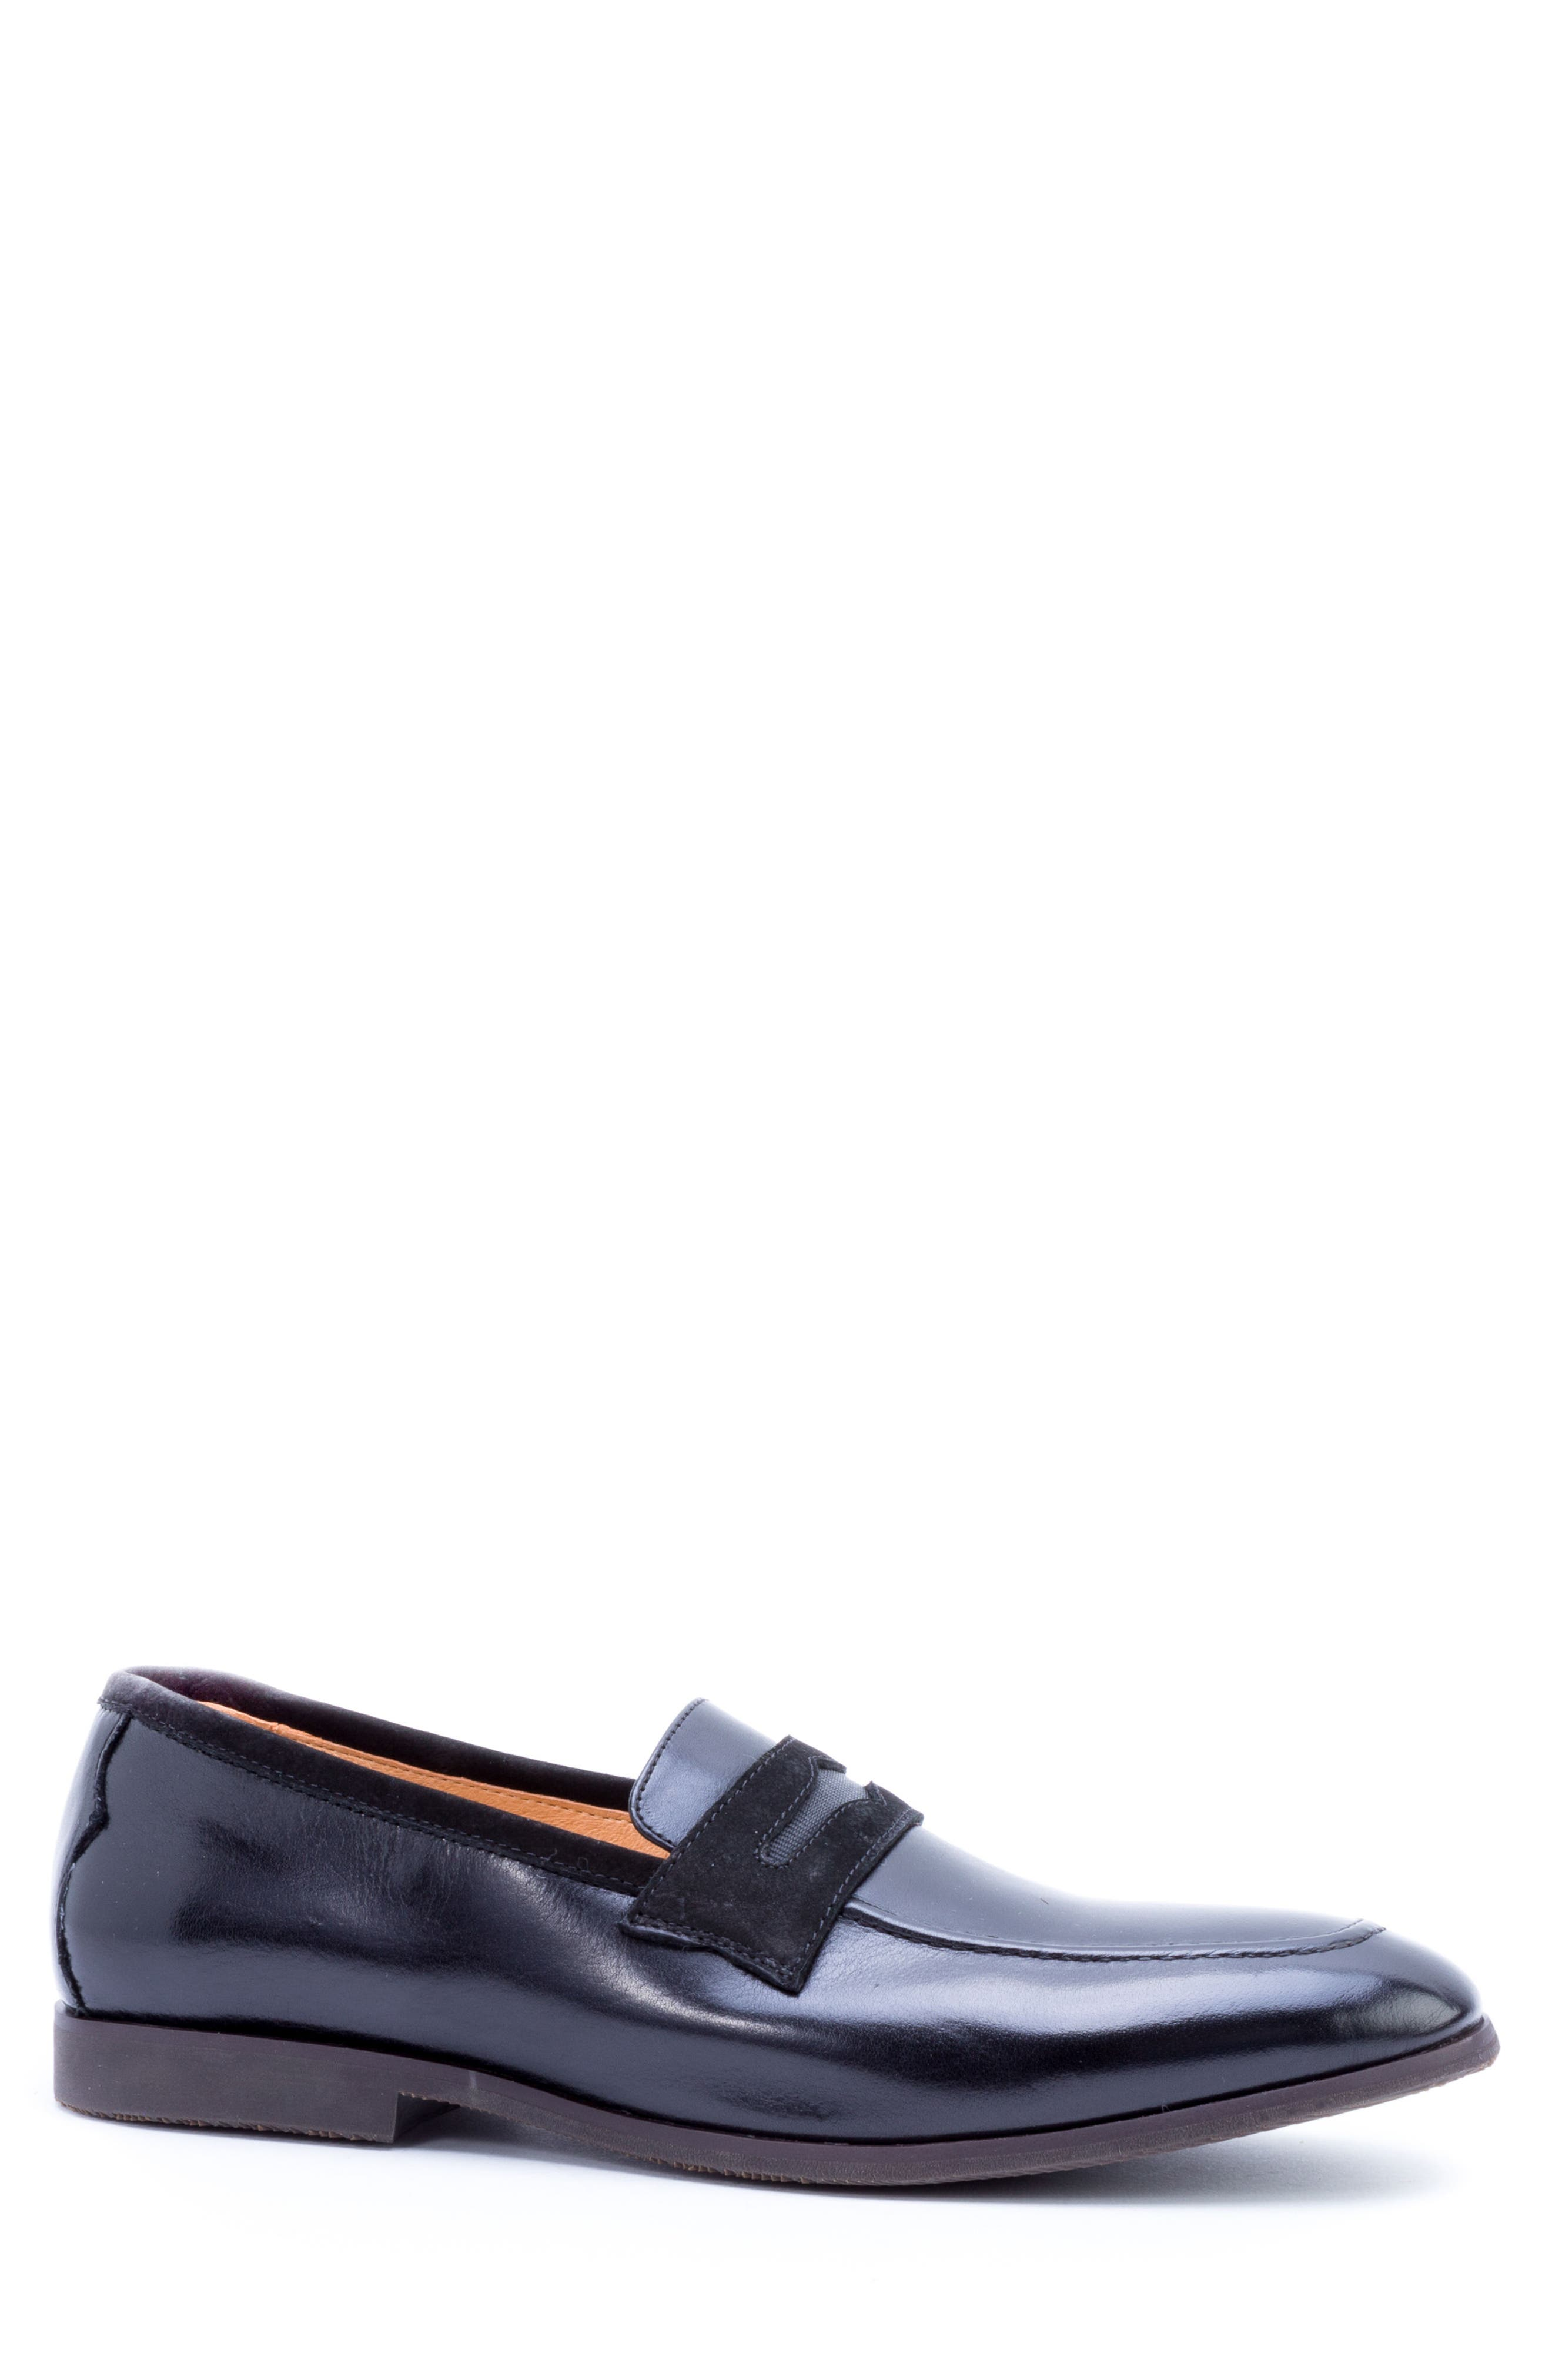 Apron Toe Penny Loafer,                             Alternate thumbnail 3, color,                             001